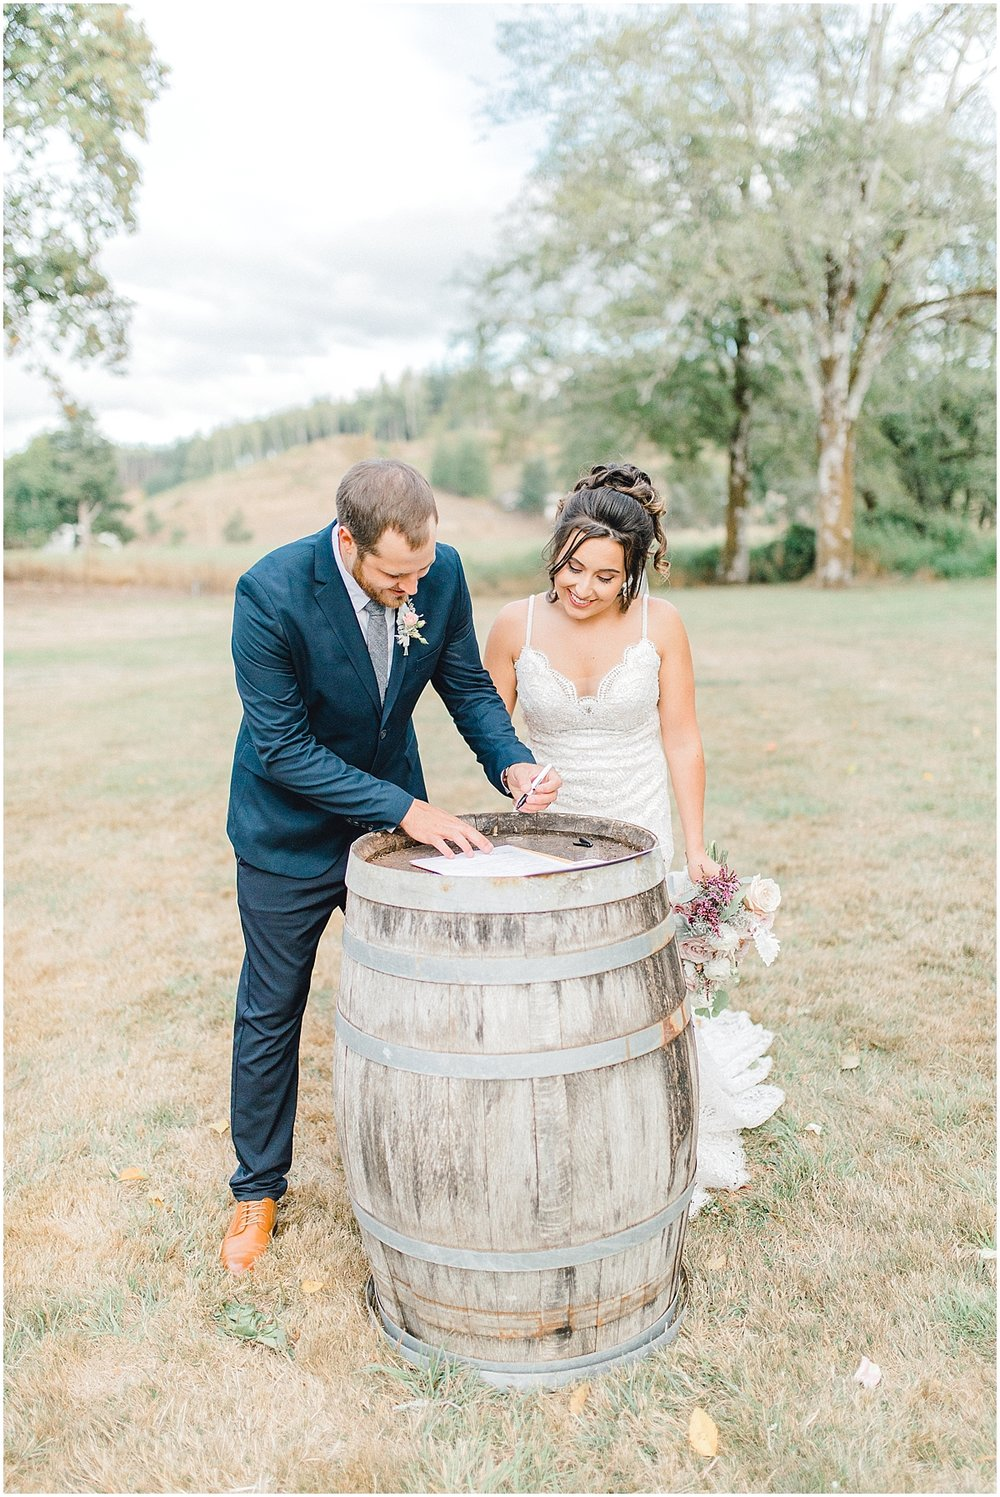 Beautiful mauve wedding in the Pacific Northwest, Emma Rose Company Light and Airy Wedding Photographer Seattle, Washington, Kindred Presets, Wedding Design Details Purple and Blush_0103.jpg